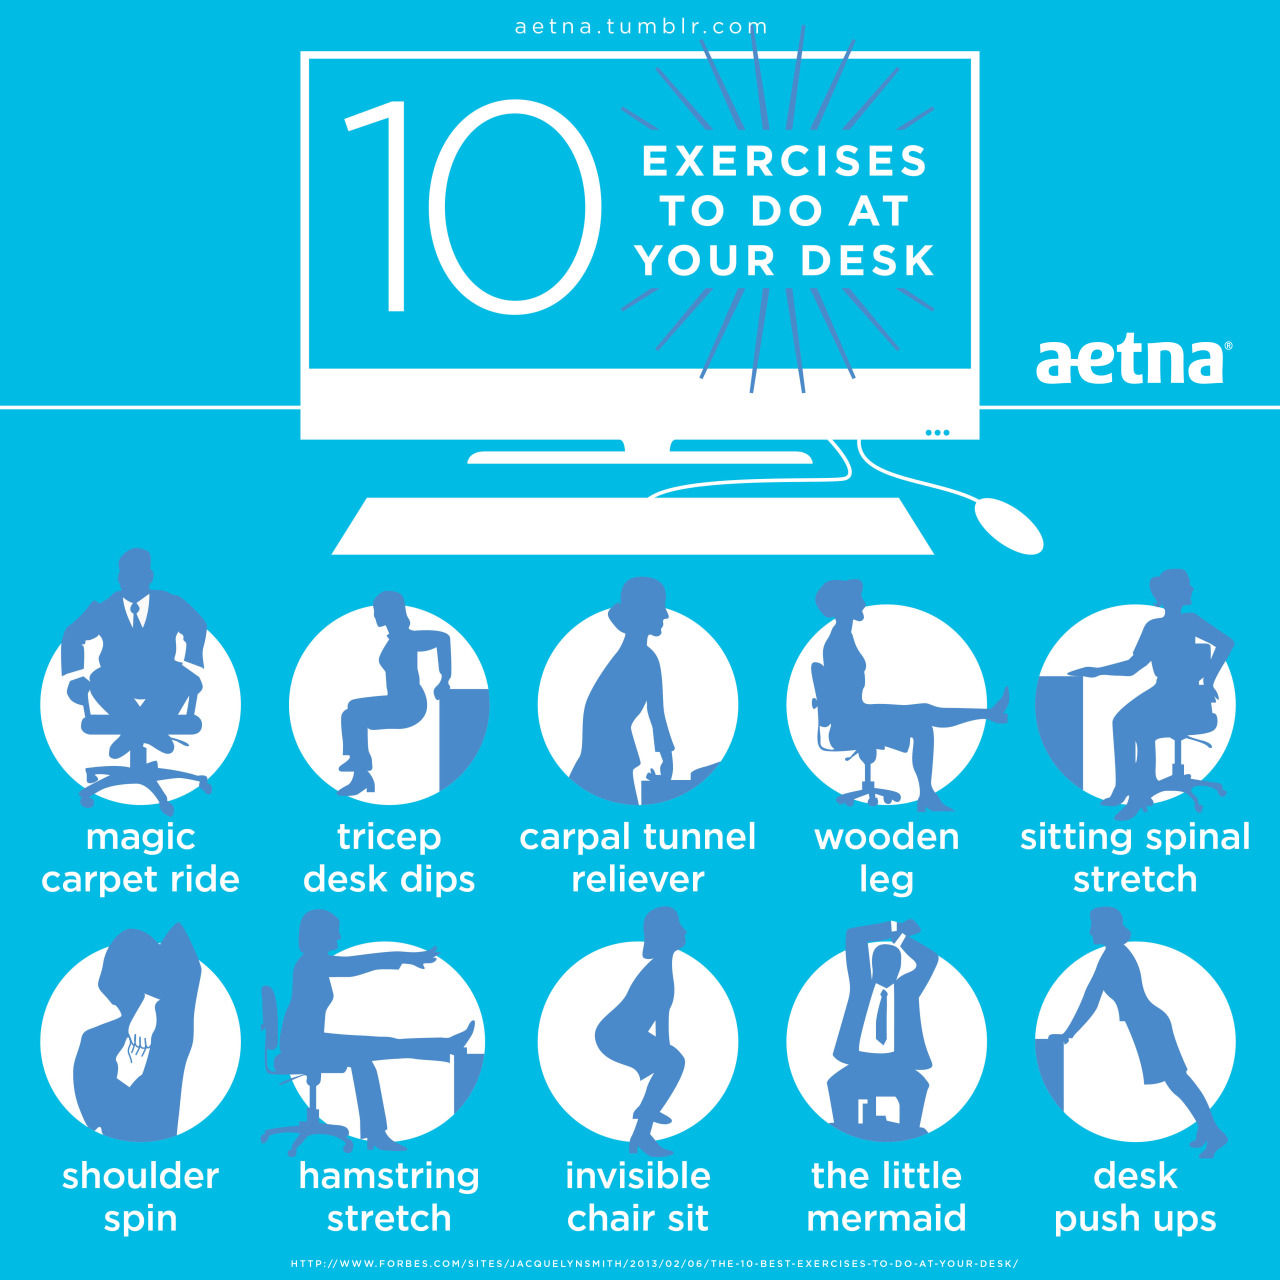 10 exercises to do at your desk pictures photos and images for rh lovethispic com how to get exercise at your desk how to exercise while sitting at your desk